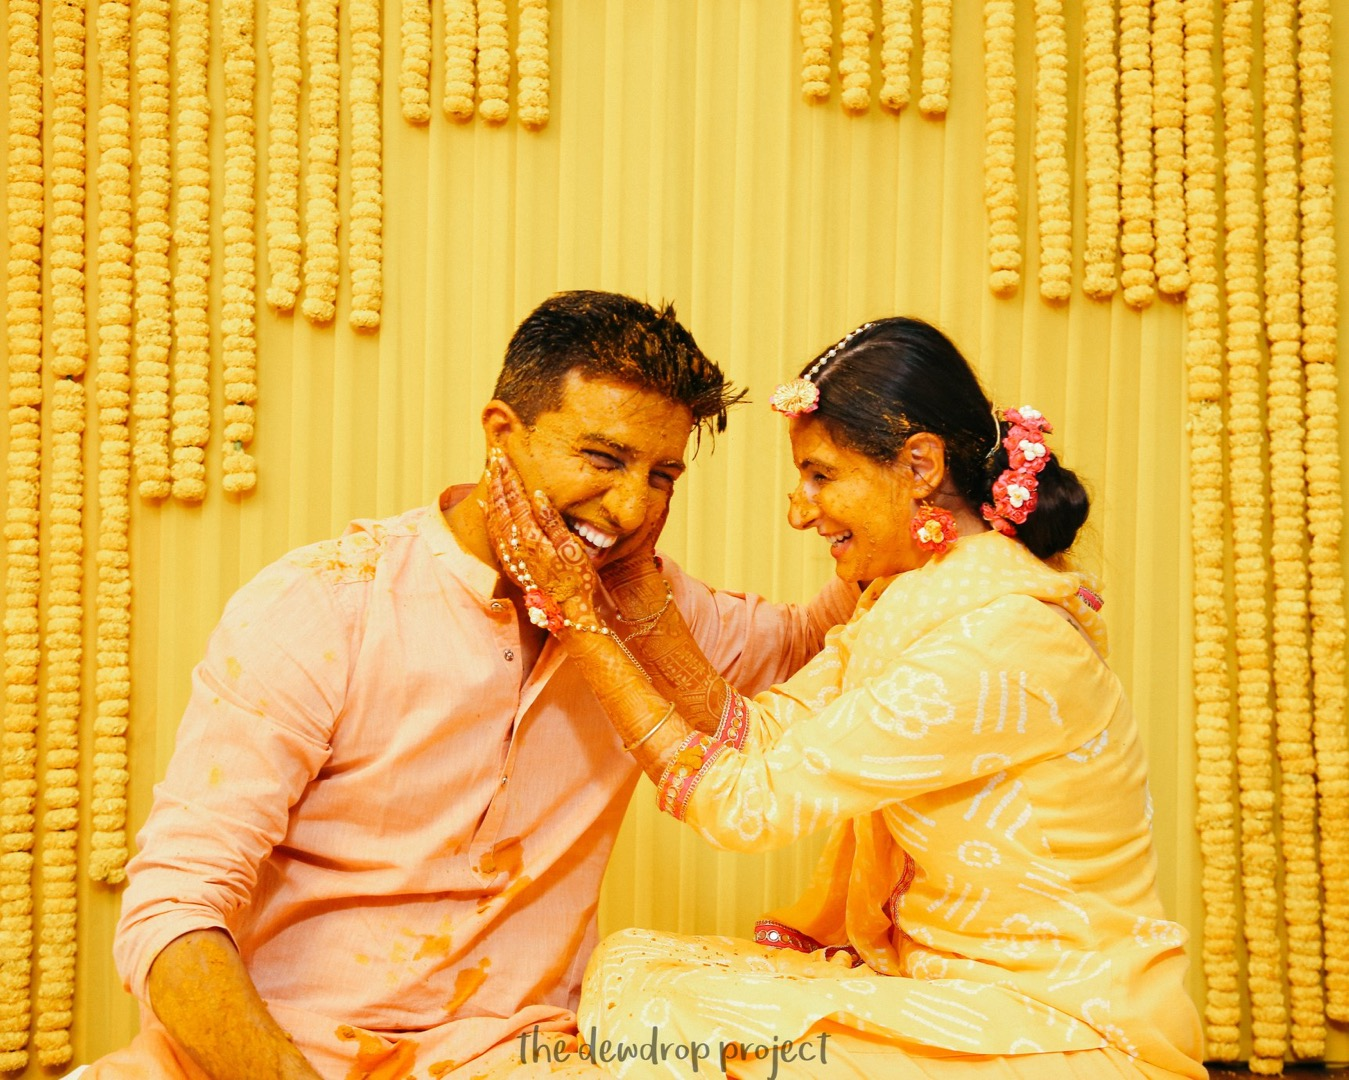 Couple having fun at Haldi Ceremony